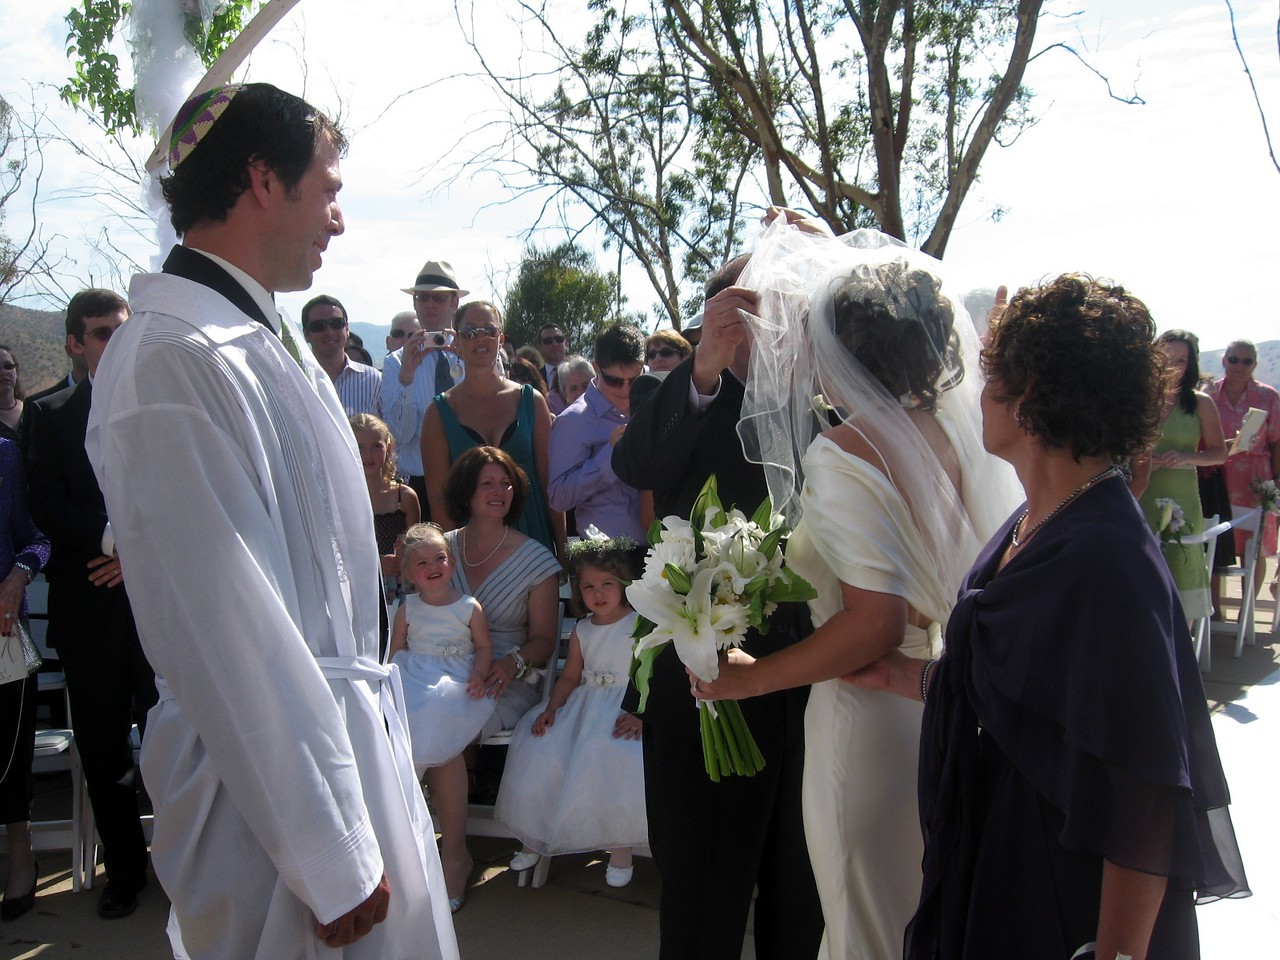 Gary (father of the bride) kisses Abby while Avram and Hope (mother of the bride) look on